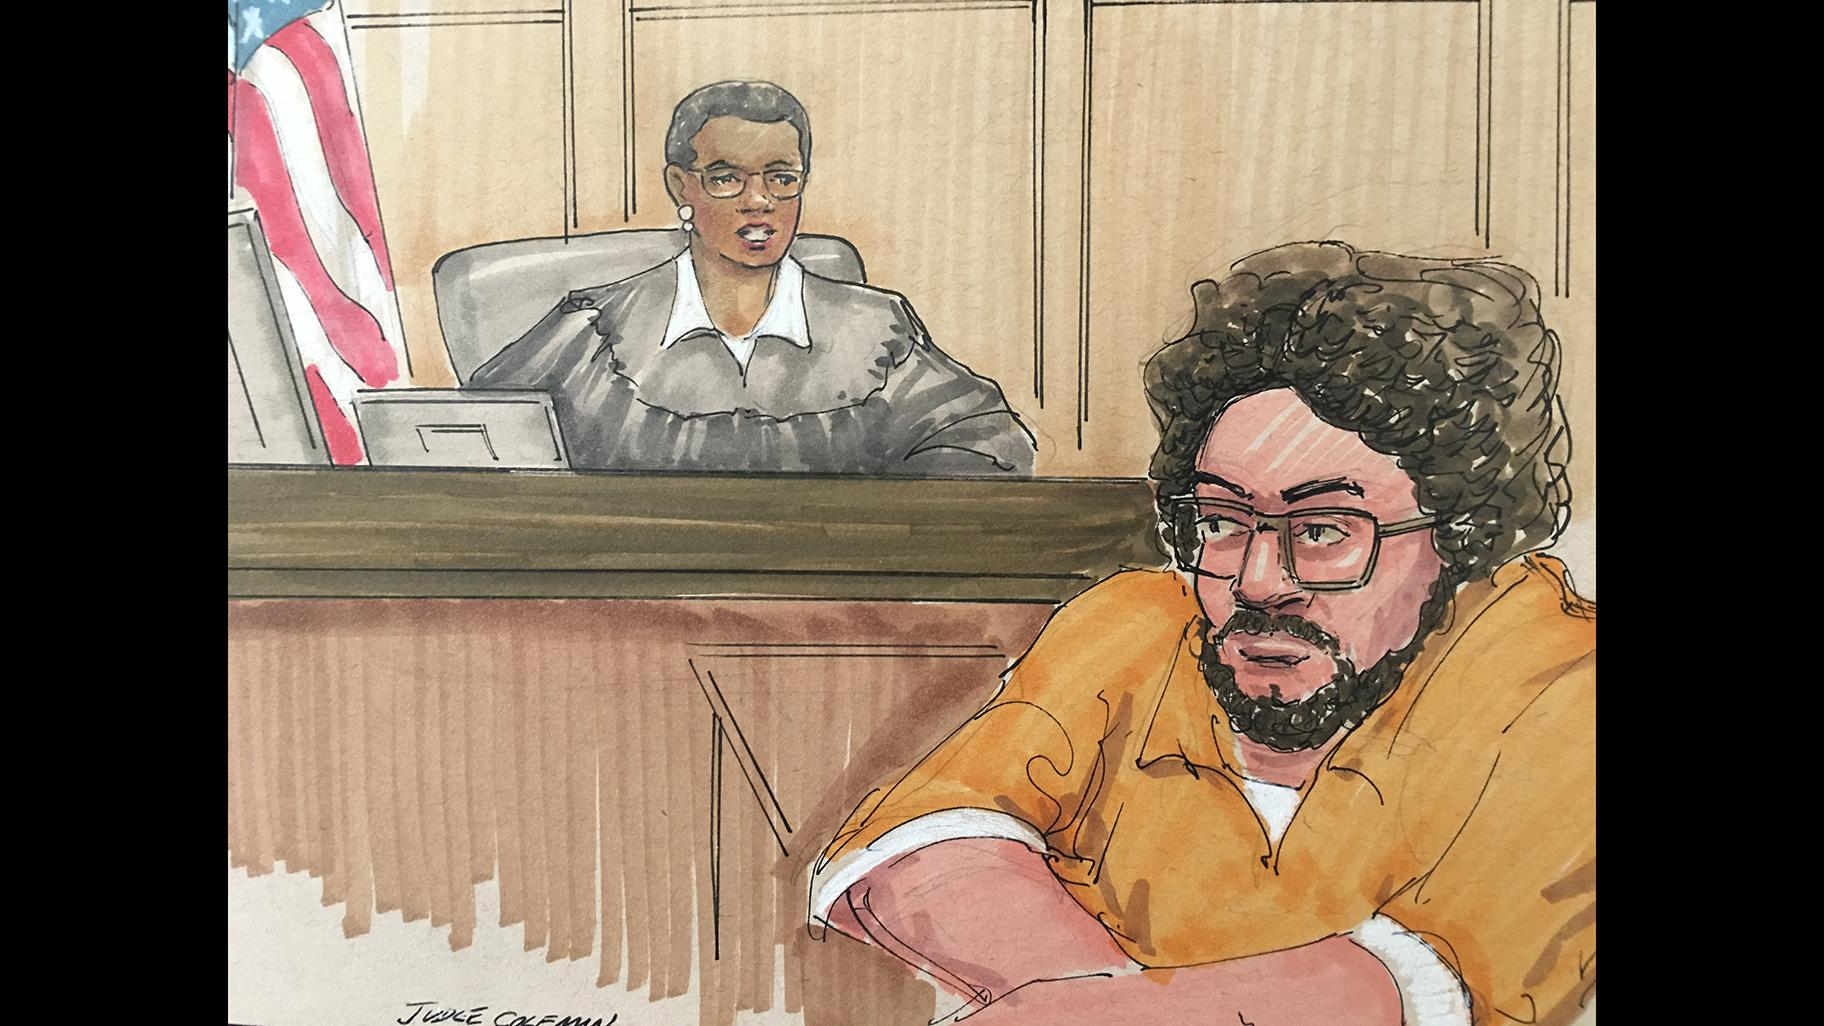 Adel Daoud, 25, appears before Judge Sharon Johnson Coleman on Monday, May 6, 2019 in Chicago. (Courtroom sketch by Thomas Gianni)